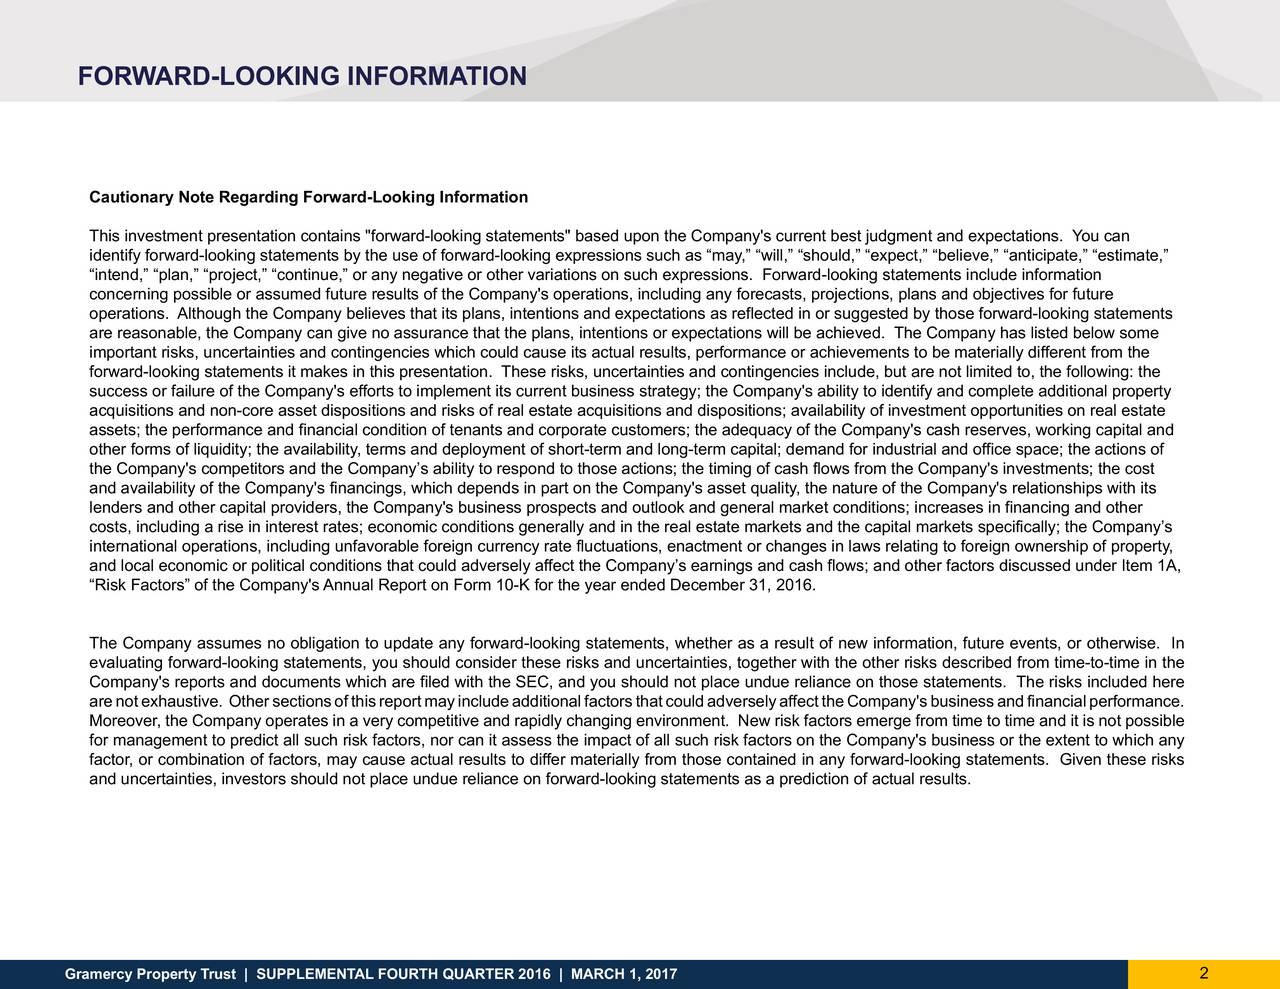 """Cautionary Note Regarding Forward-Looking Information This investment presentation contains """"forward-looking statements"""" based upon the Company's current best judgment and expectations. You can identify forward-looking statements by the use of forward-looking expressions such as may, will, should, expect, believe, anticipate, estimate, intend, plan, project, continue, or any negative or other variations on such expressions. Forward-looking statements include information concerning possible or assumed future results of the Company's operations, including any forecasts, projections, plans and objectives for future operations. Although the Company believes that its plans, intentions and expectations as reflected in or suggested by those forward-looking statements are reasonable, the Company can give no assurance that the plans, intentions or expectations will be achieved. The Company has listed below some important risks, uncertainties and contingencies which could cause its actual results, performance or achievements to be materially different from the forward-looking statements it makes in this presentation. These risks, uncertainties and contingencies include, but are not limited to, the following: the success or failure of the Company's efforts to implement its current business strategy; the Company's ability to identify and complete additional property acquisitions and non-core asset dispositions and risks of real estate acquisitions and dispositions; availability of investment opportunities on real estate assets; the performance and financial condition of tenants and corporate customers; the adequacy of the Company's cash reserves, working capital and other forms of liquidity; the availability, terms and deployment of short-term and long-term capital; demand for industrial and office space; the actions of the Company's competitors and the Companys ability to respond to those actions; the timing of cash flows from the Company's investments; the cost and availabili"""